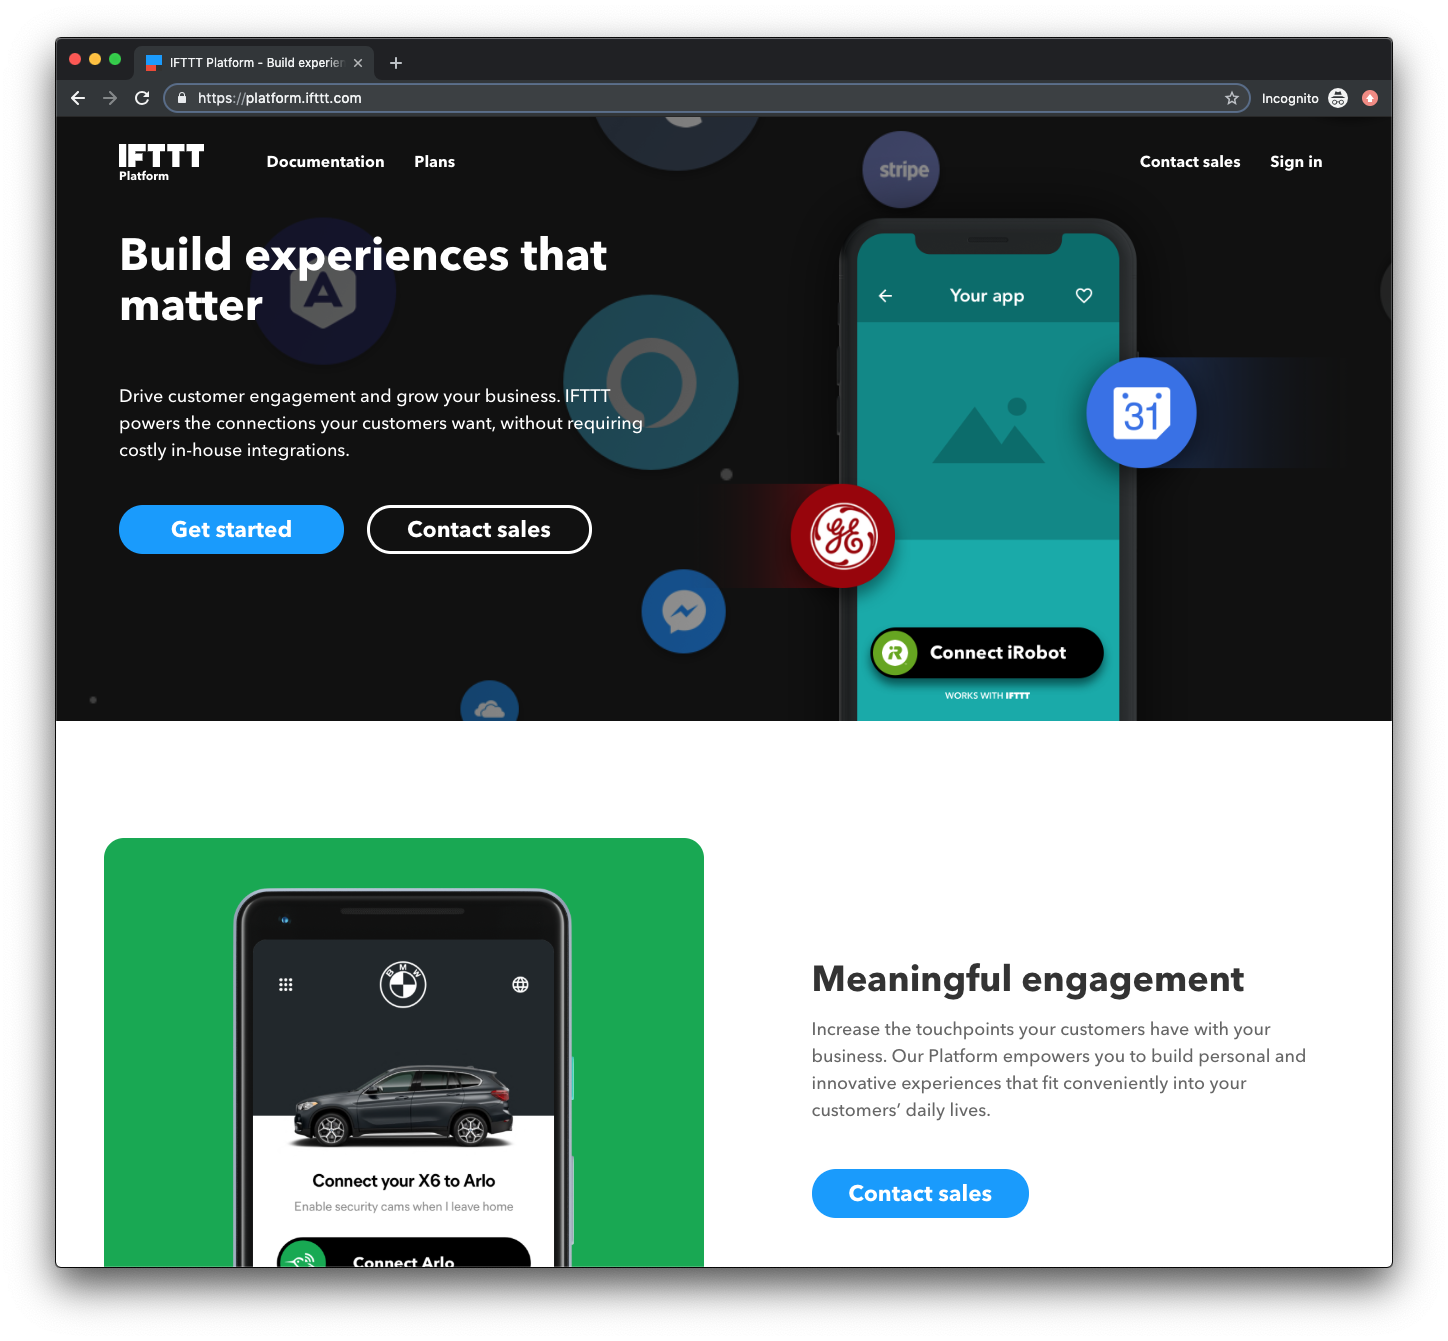 IFTTT Reviews 2019: Details, Pricing, & Features | G2